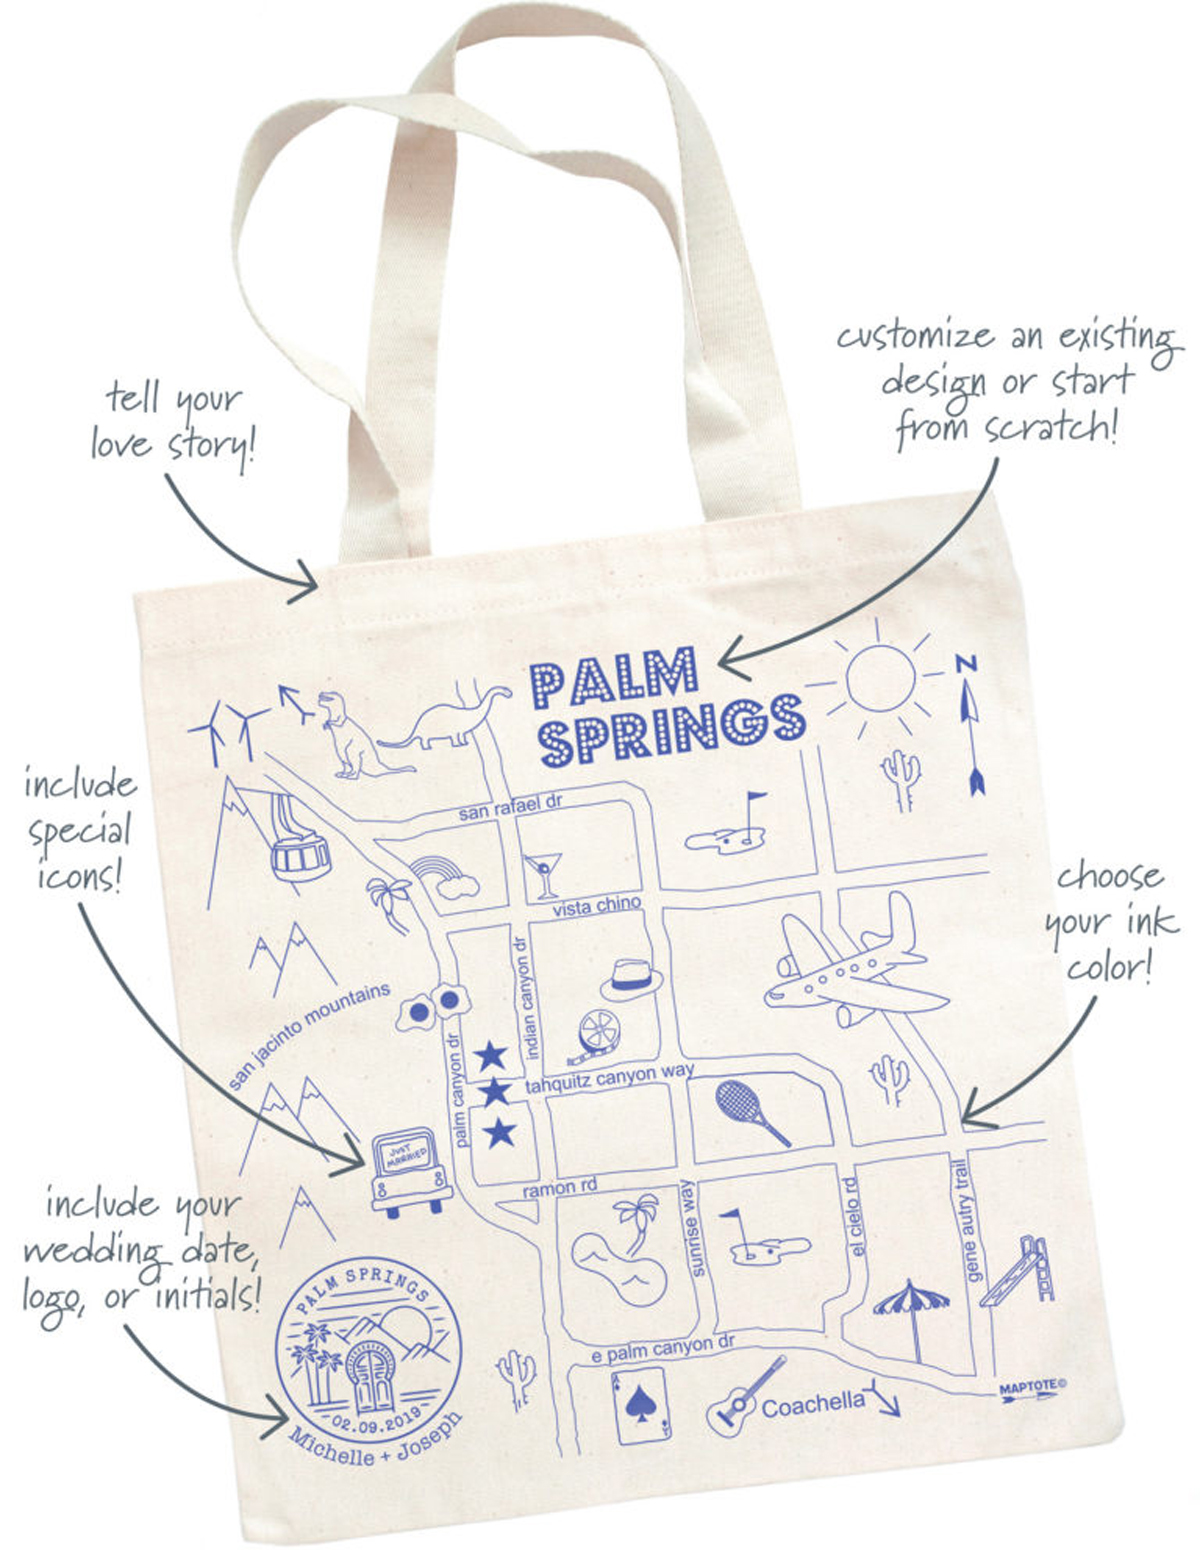 5 Tips For Making An Unforgettable Welcome Tote